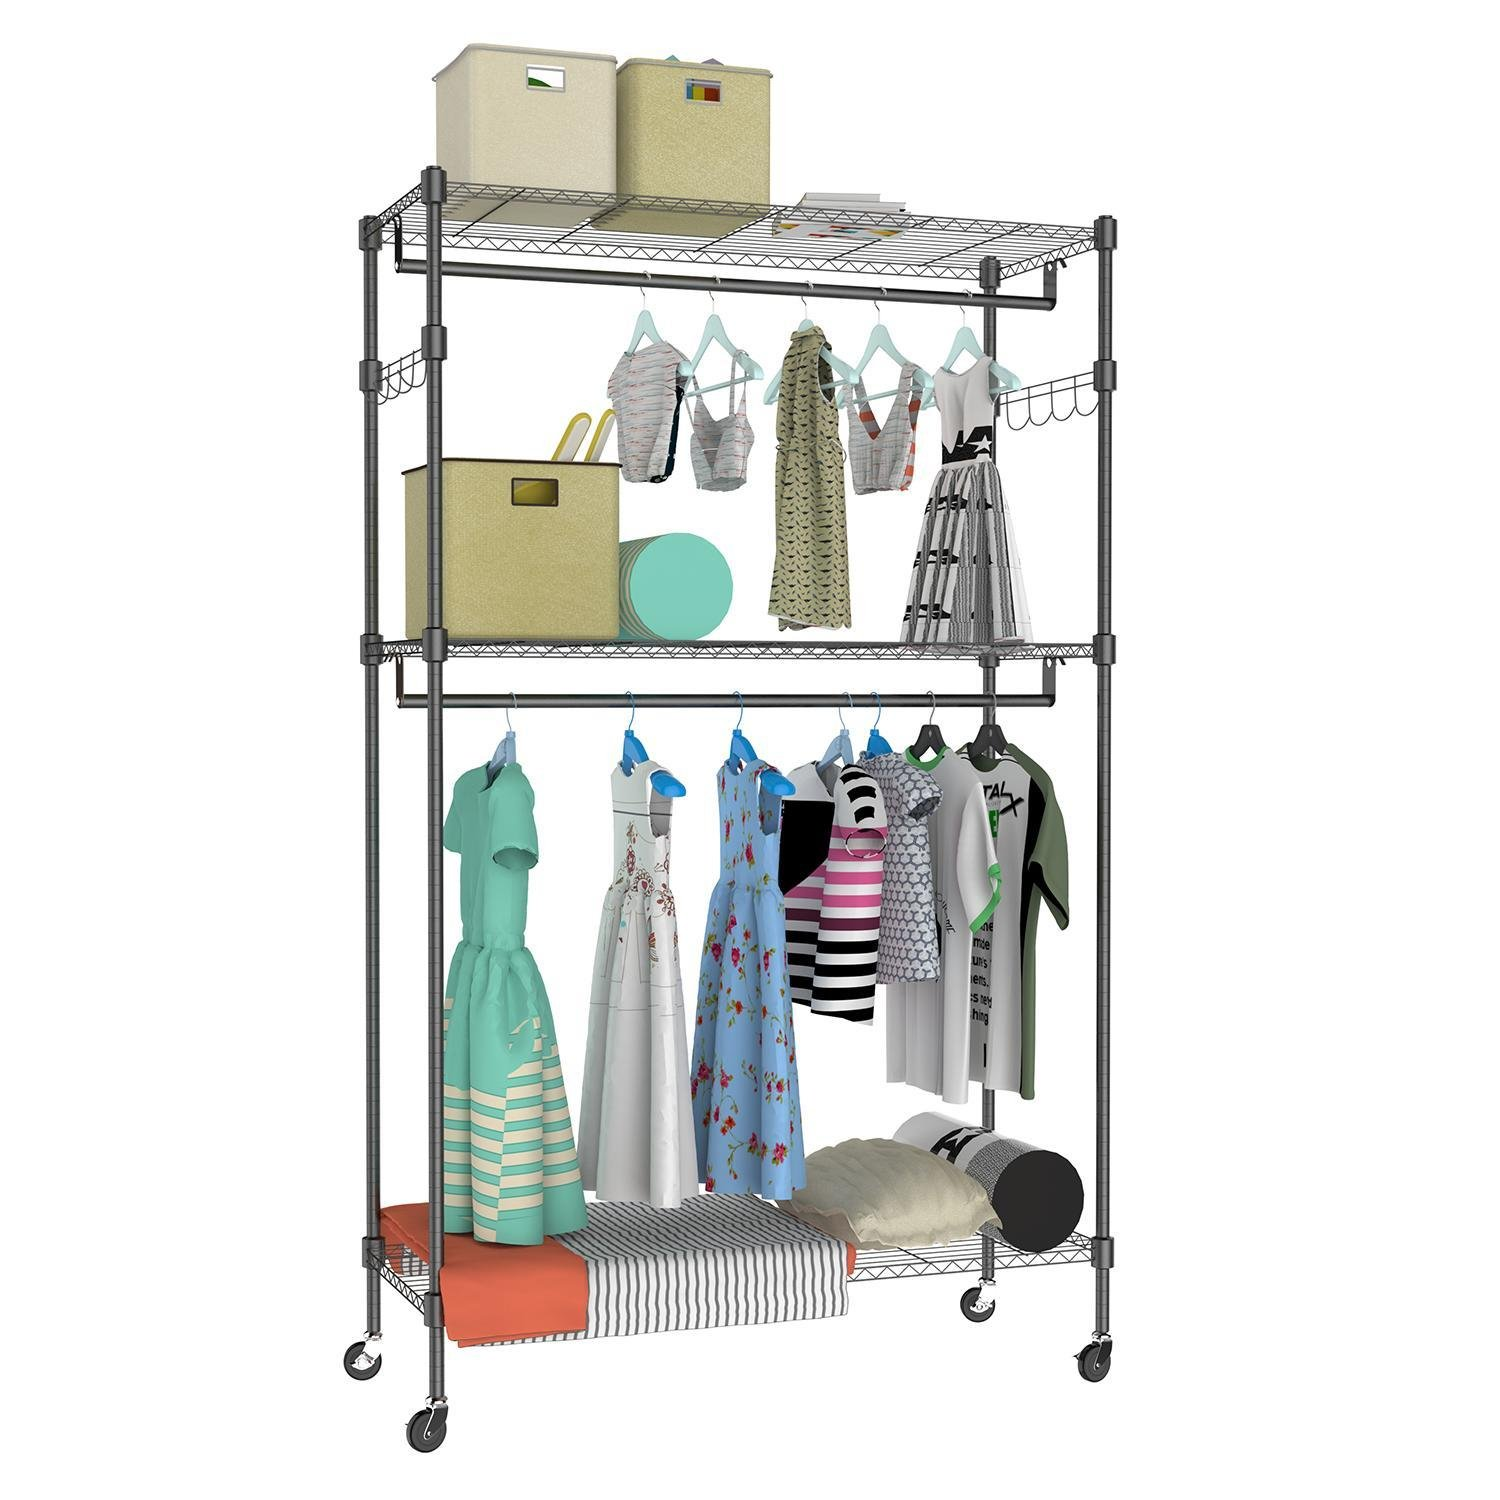 Rapesee Metal Rolling Clothes Garment Rack Portable Heavy Duty Large Wire Shelving Clothes Storage Shelf Garment Hanging Rack (Black 2 sets hanger rod 3 layers)